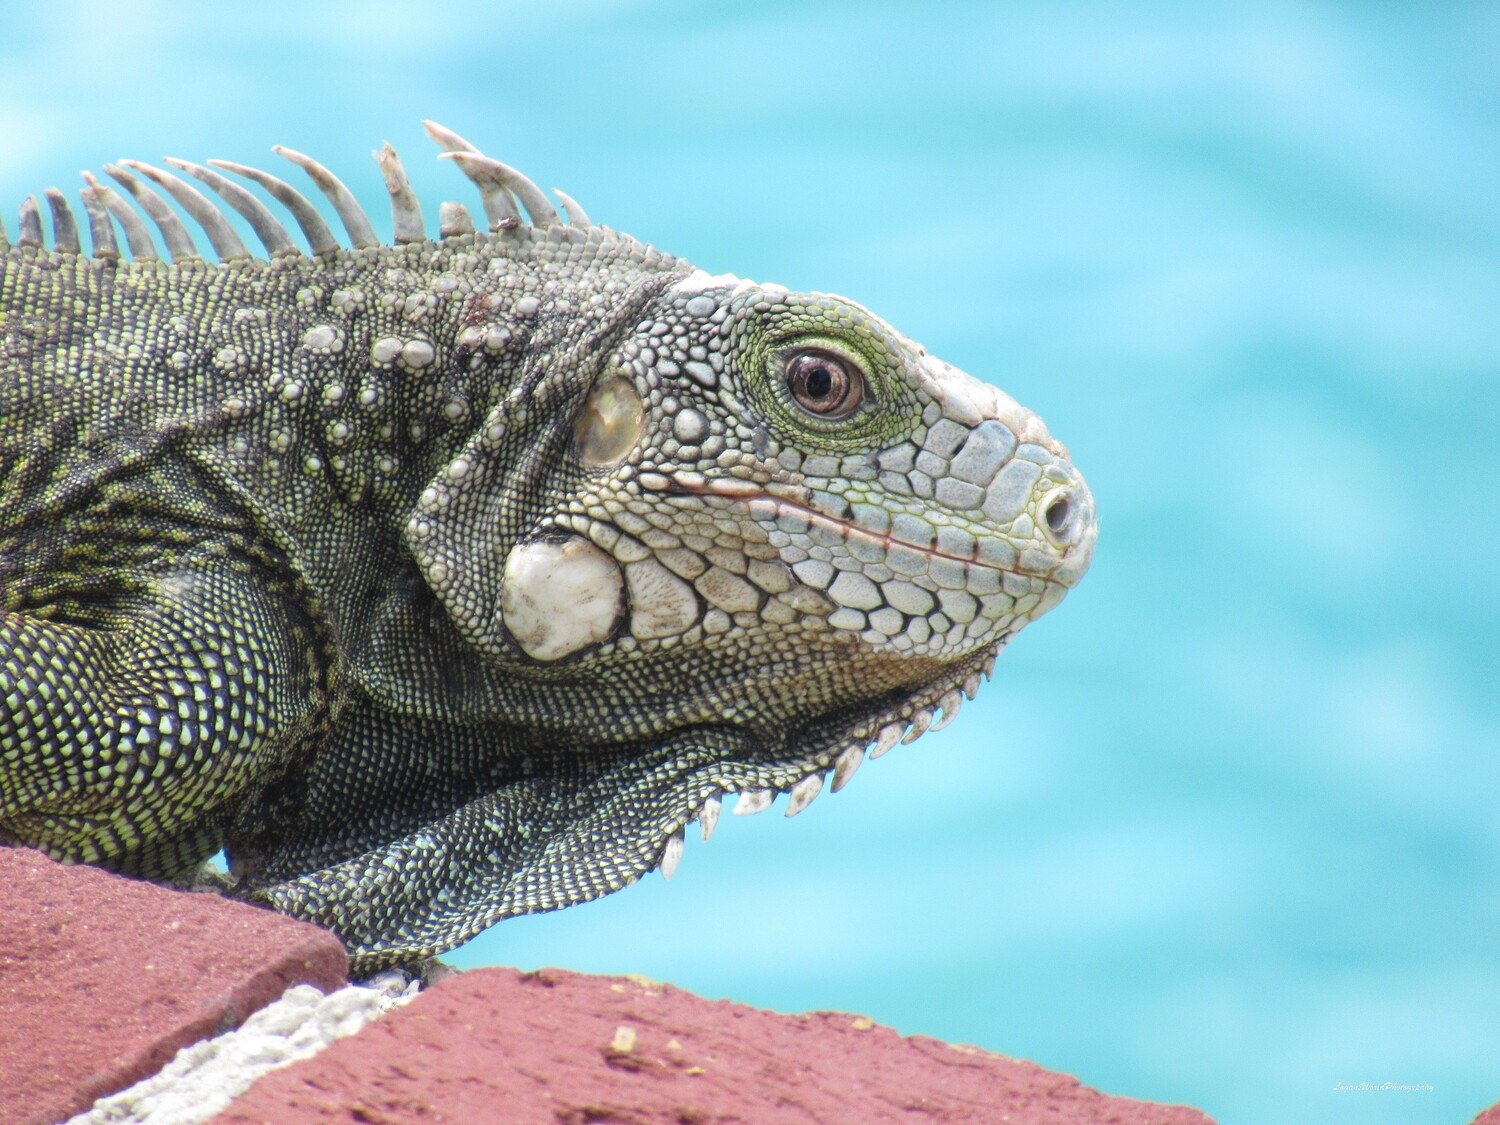 "Green Iguana Sunning 12"" x 16"" Photo Print"